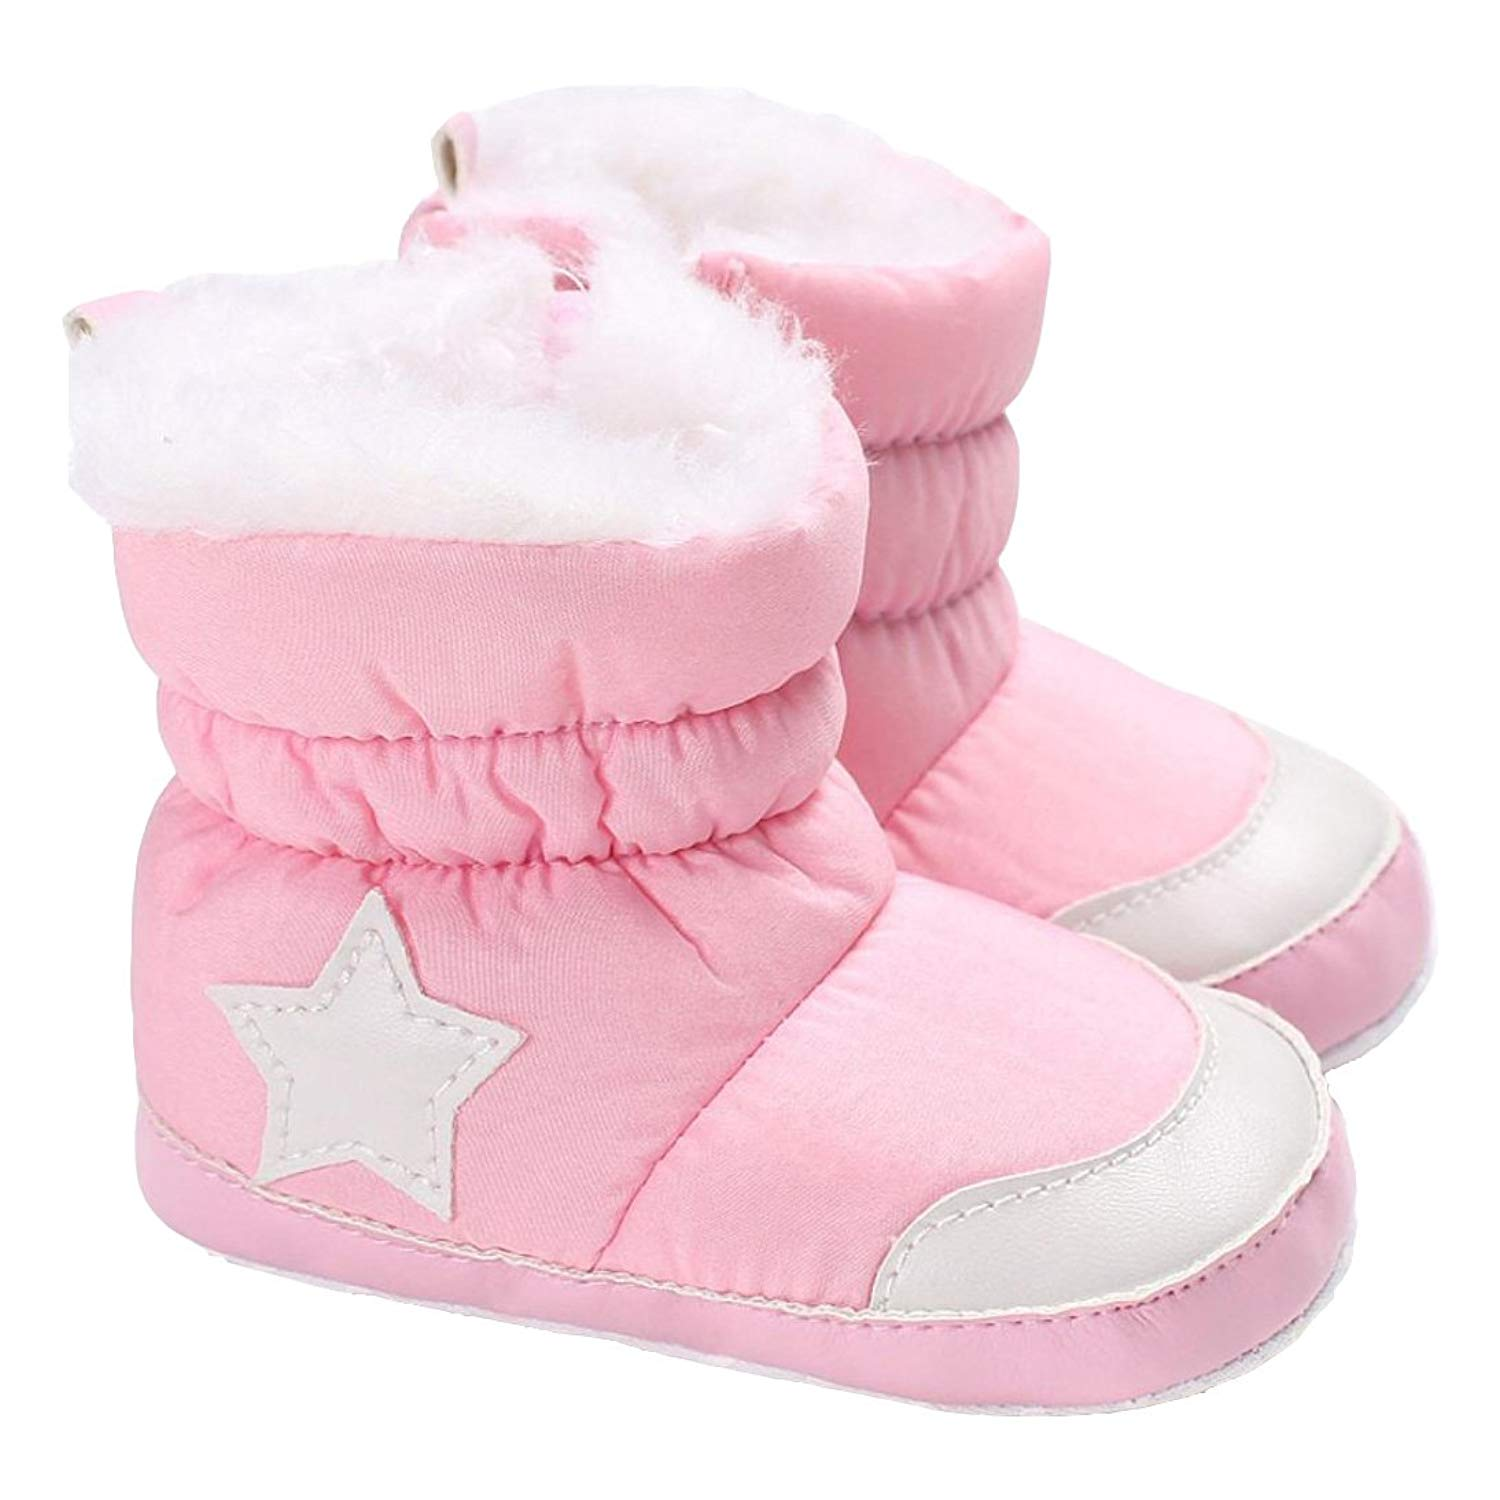 8ab07bd20c49 Get Quotations · Morrivoe Baby Girls Boys Winter Warm Side Zipper Snow  Boots Toddler Martin Sneaker Casual Shoes Outdoor